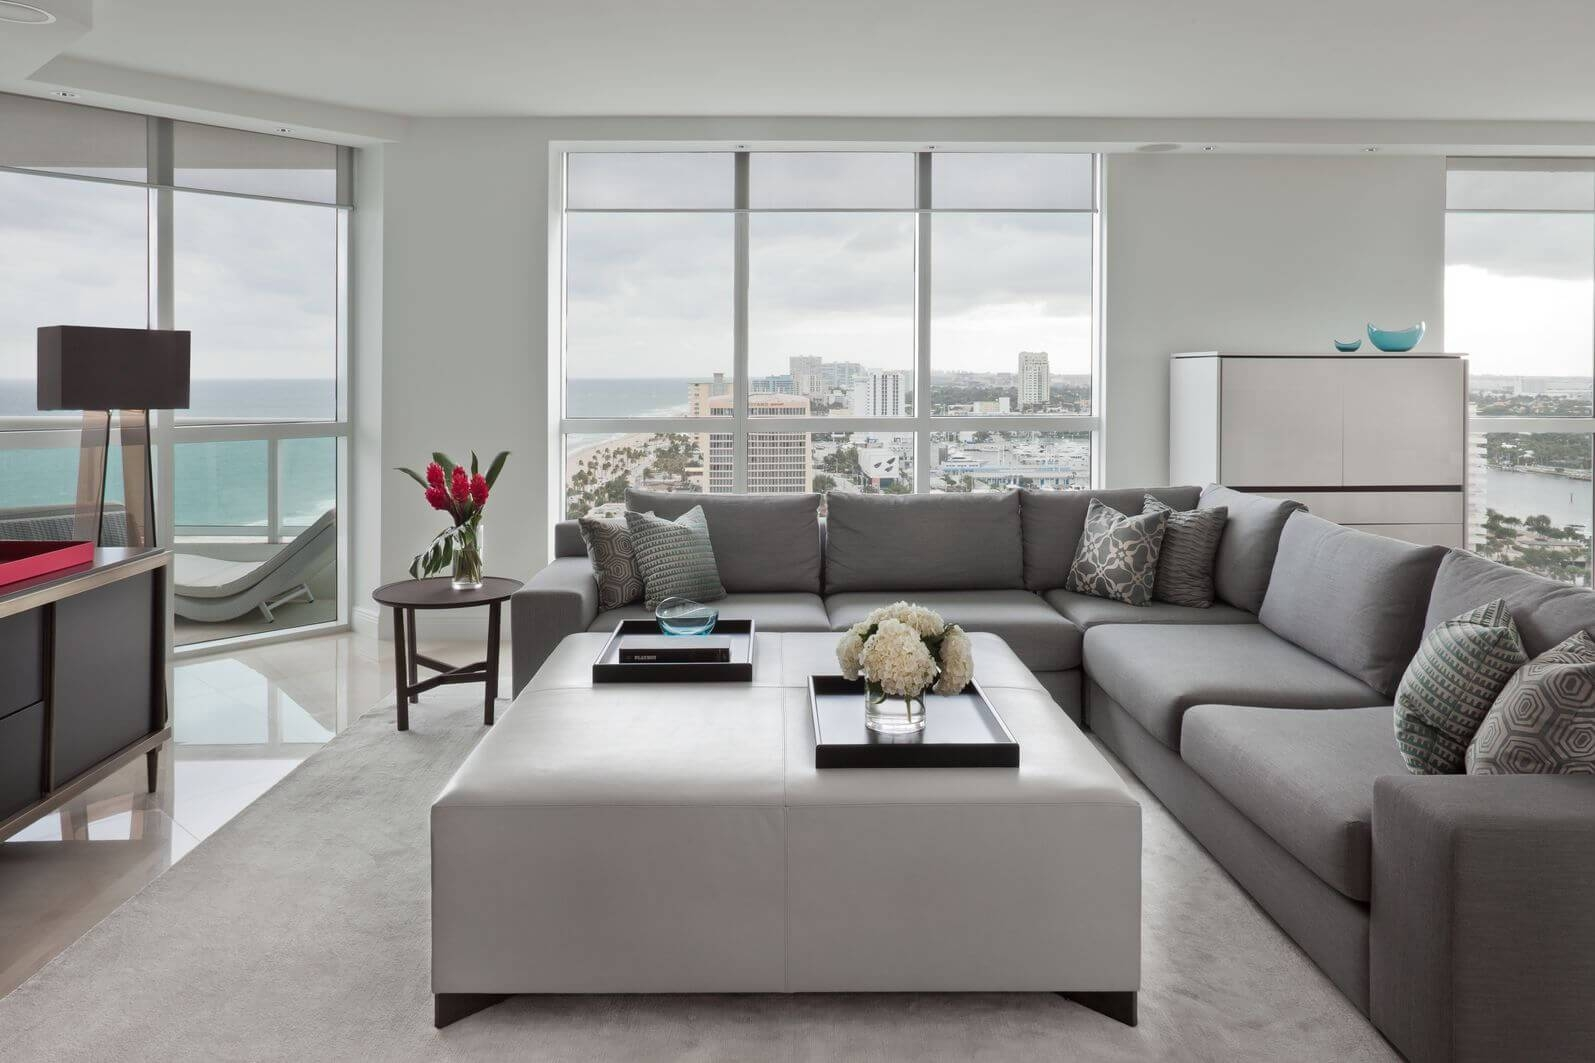 Contemporary Square White Leather Large Ottoman Coffee Table Grey inside Sectional Sofa With Large Ottoman (Image 3 of 30)